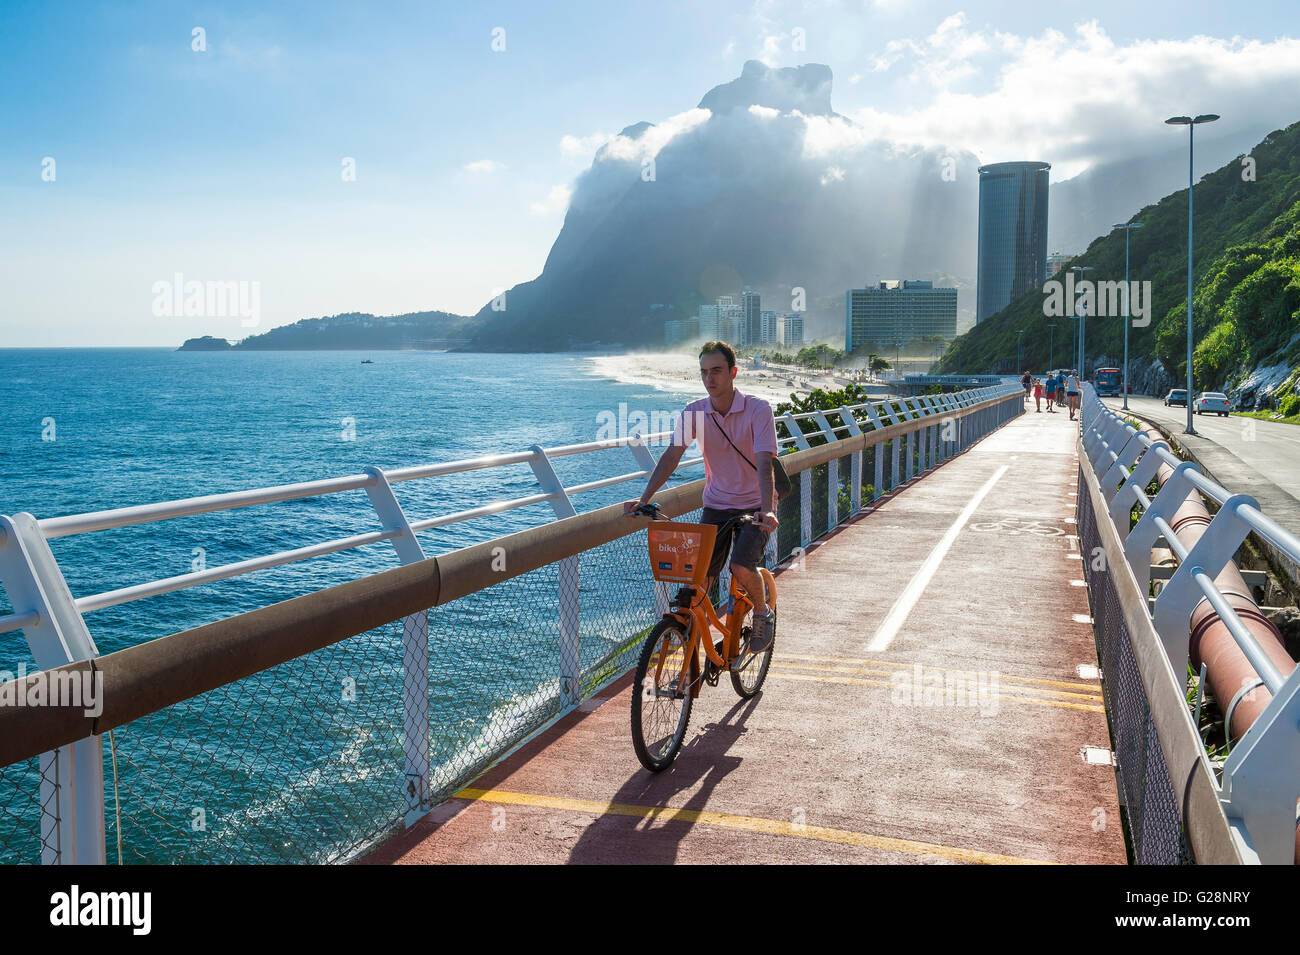 RIO DE JANEIRO - MARCH 19, 2016: A cyclist rides on the newly completed Ciclovia Tim Maia bike path, an Olympics - Stock Image